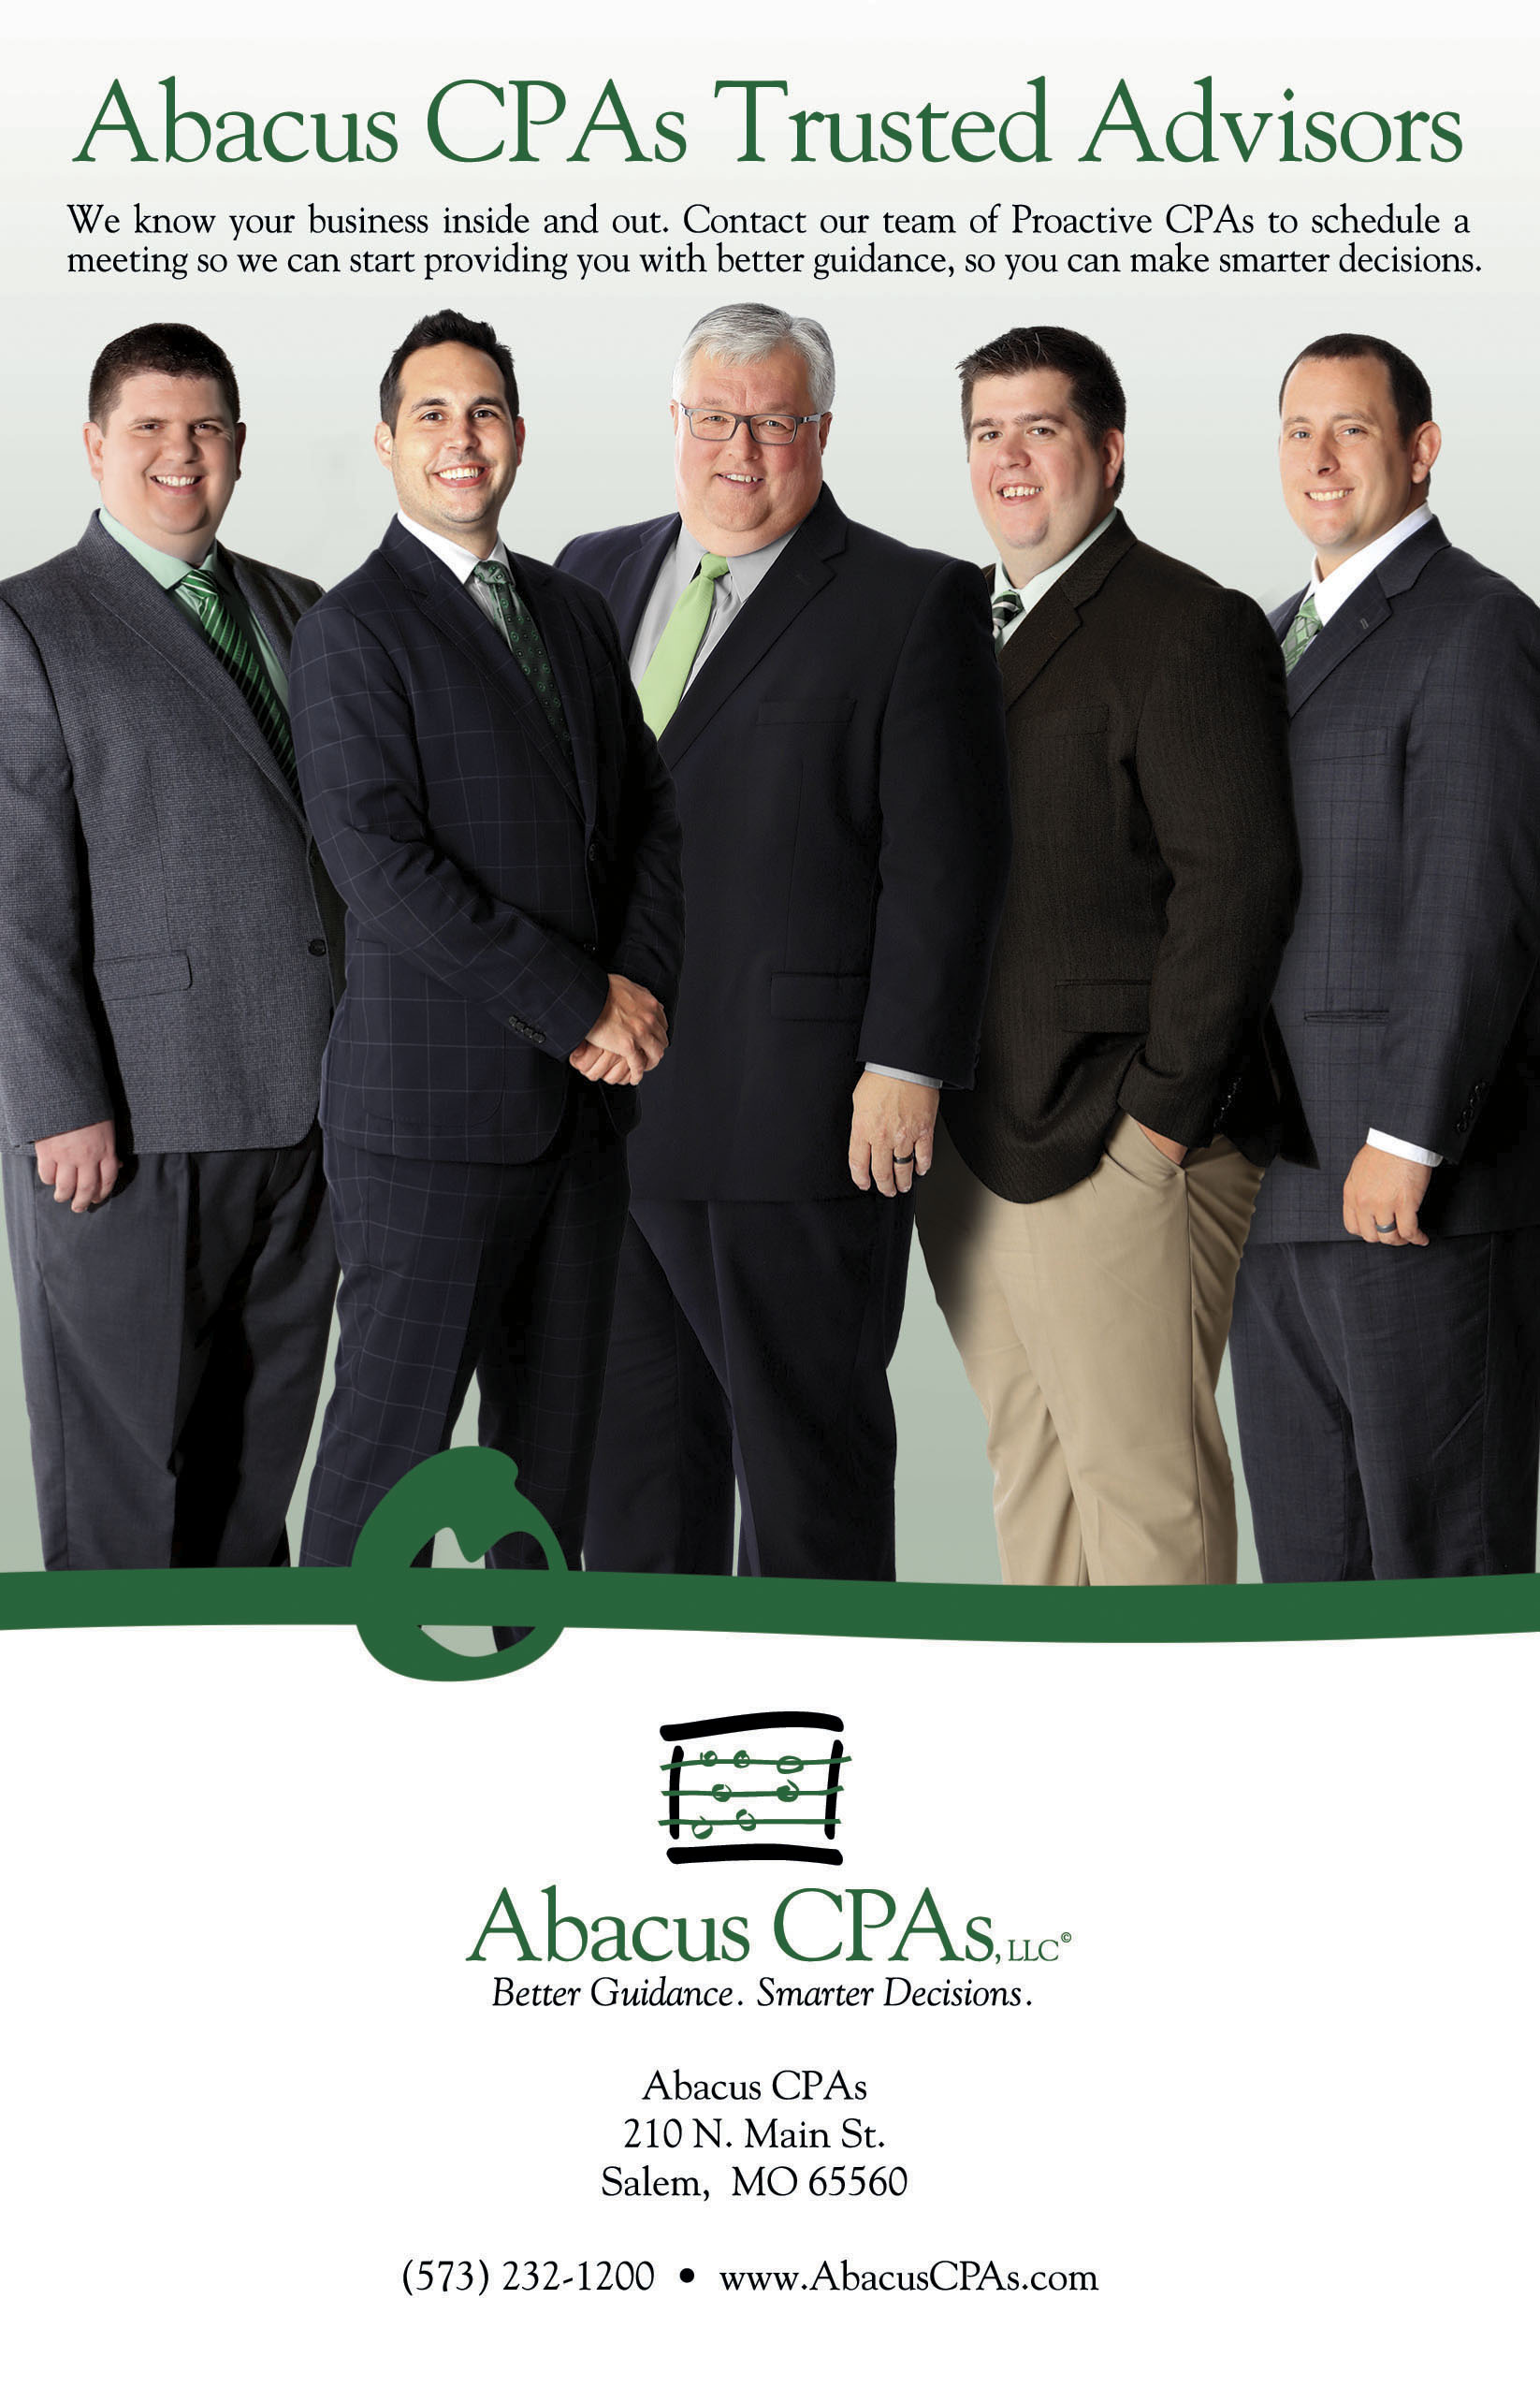 Abacus CPAs - Trusted Advisors 01